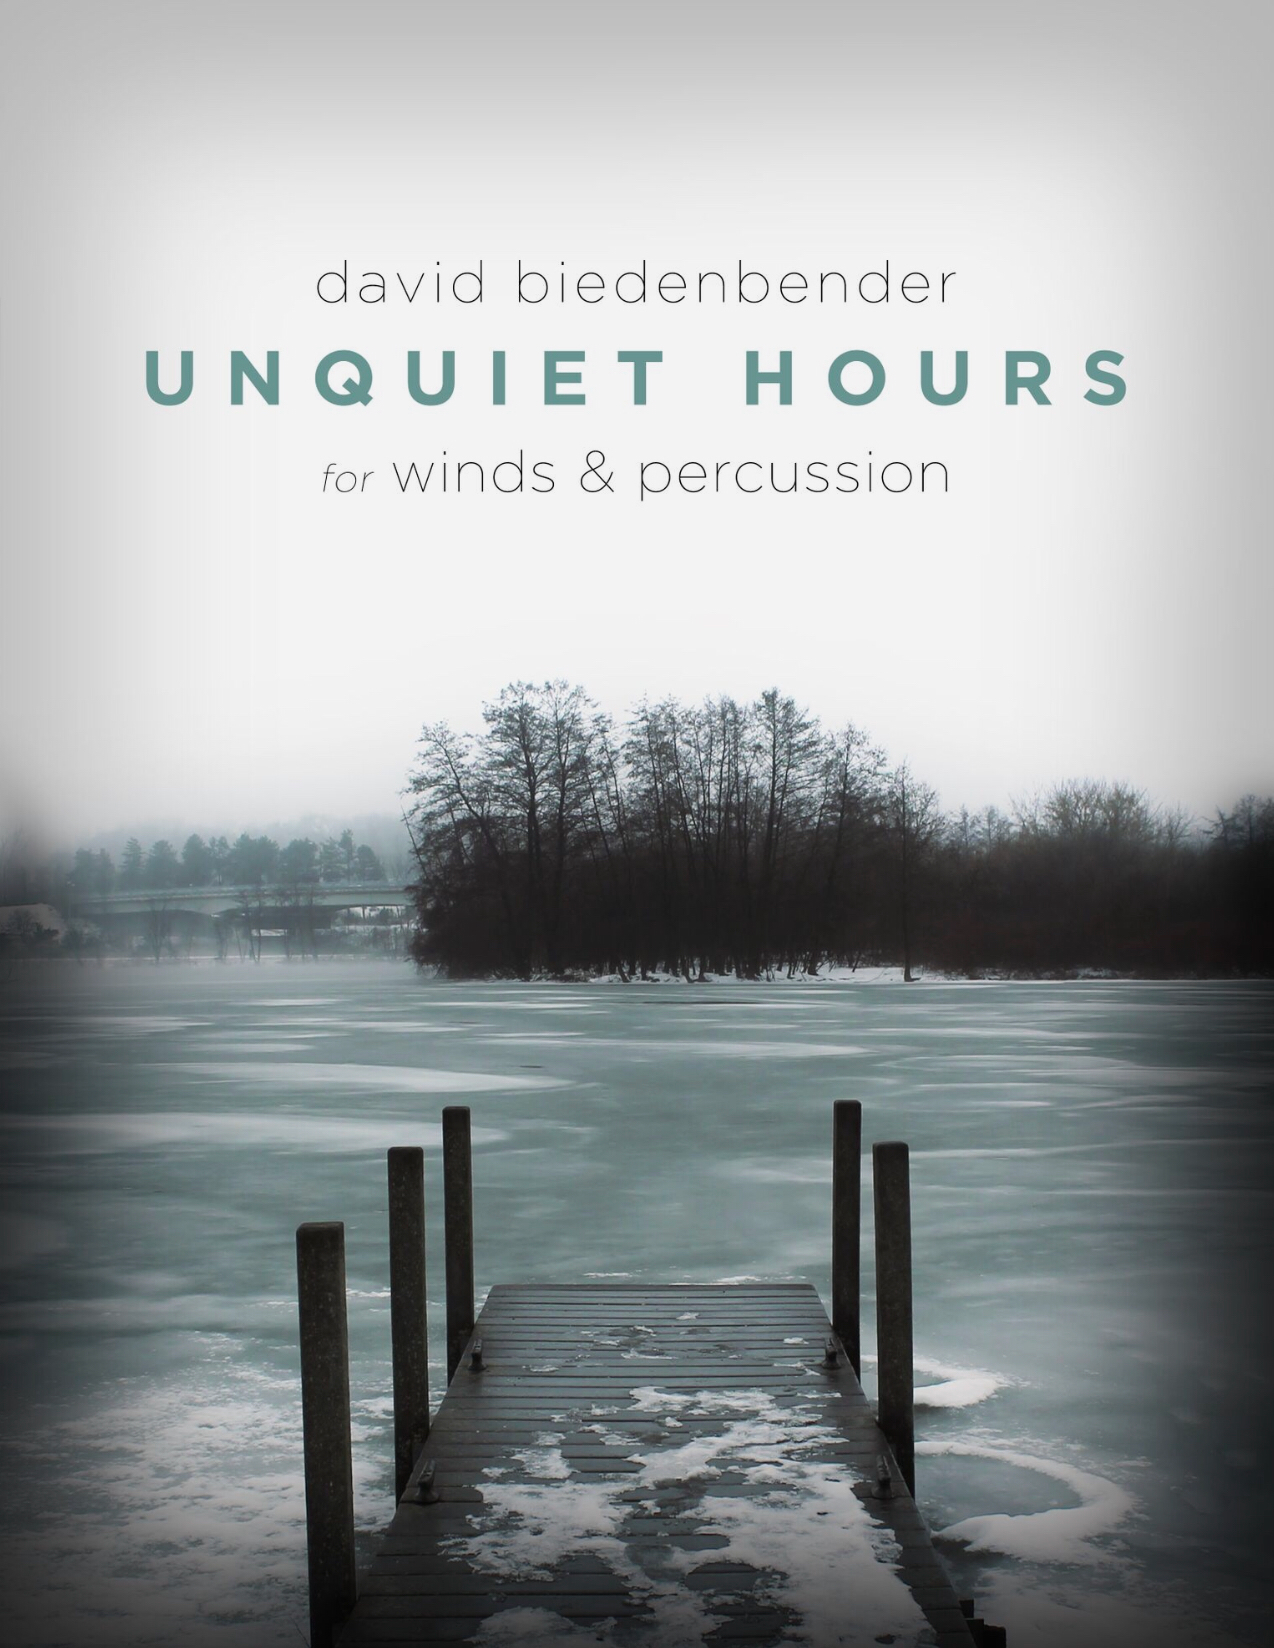 Unquiet Hours by David Biedenbender